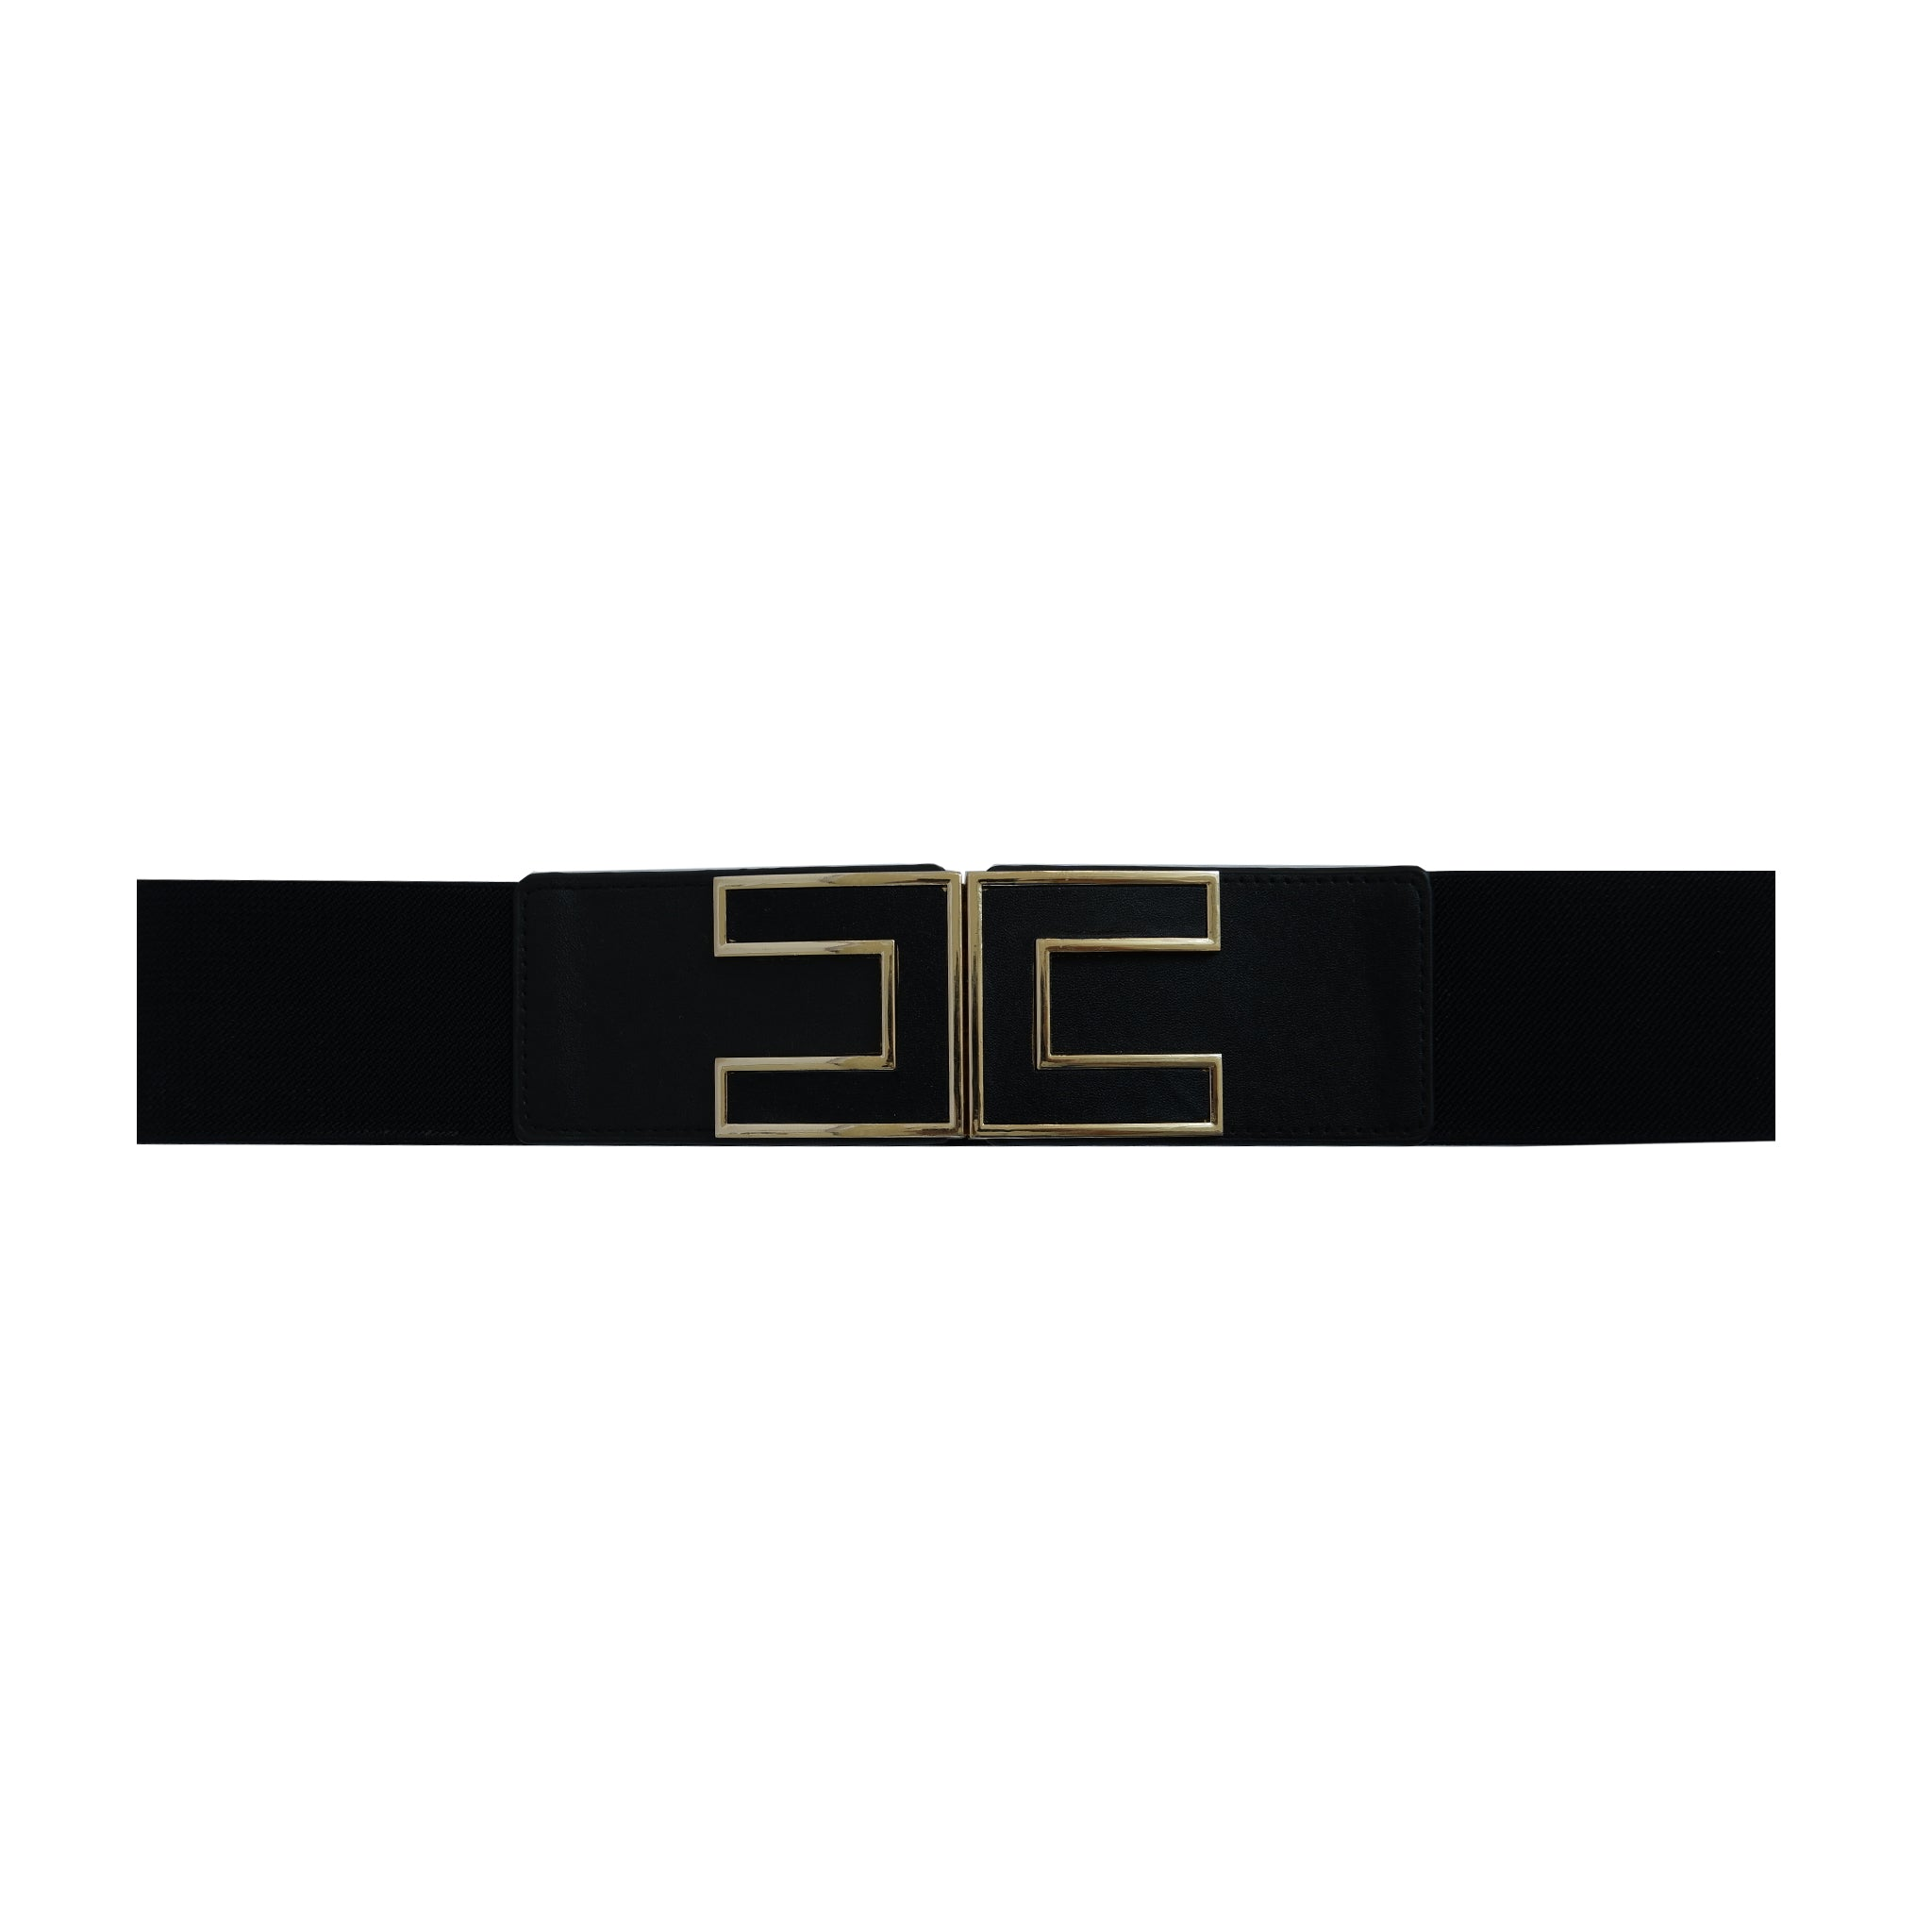 Come together belt